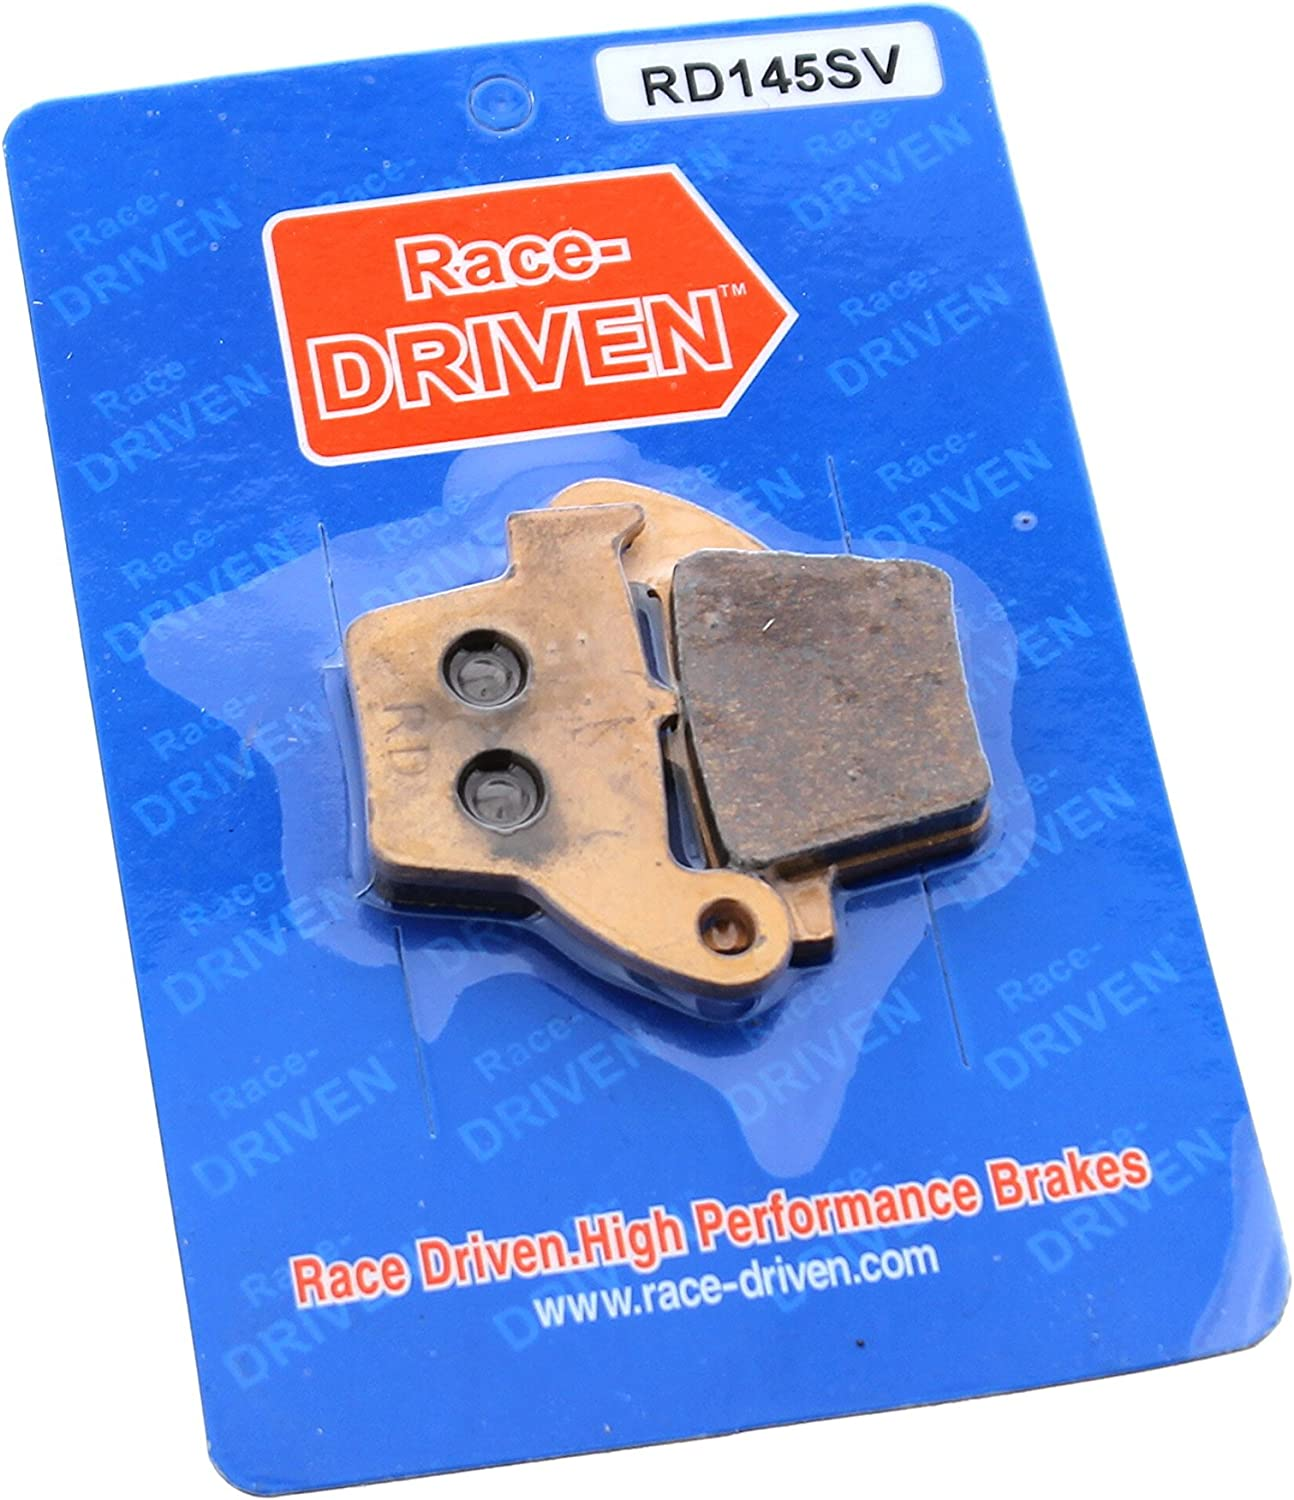 Race Driven Front & Rear RipTide Brake Rotor and MudRat Brake Pads for Honda CRF250X CRF250R CR125R CRF450X CRF450R 81fo0zRqUfLSL1500_